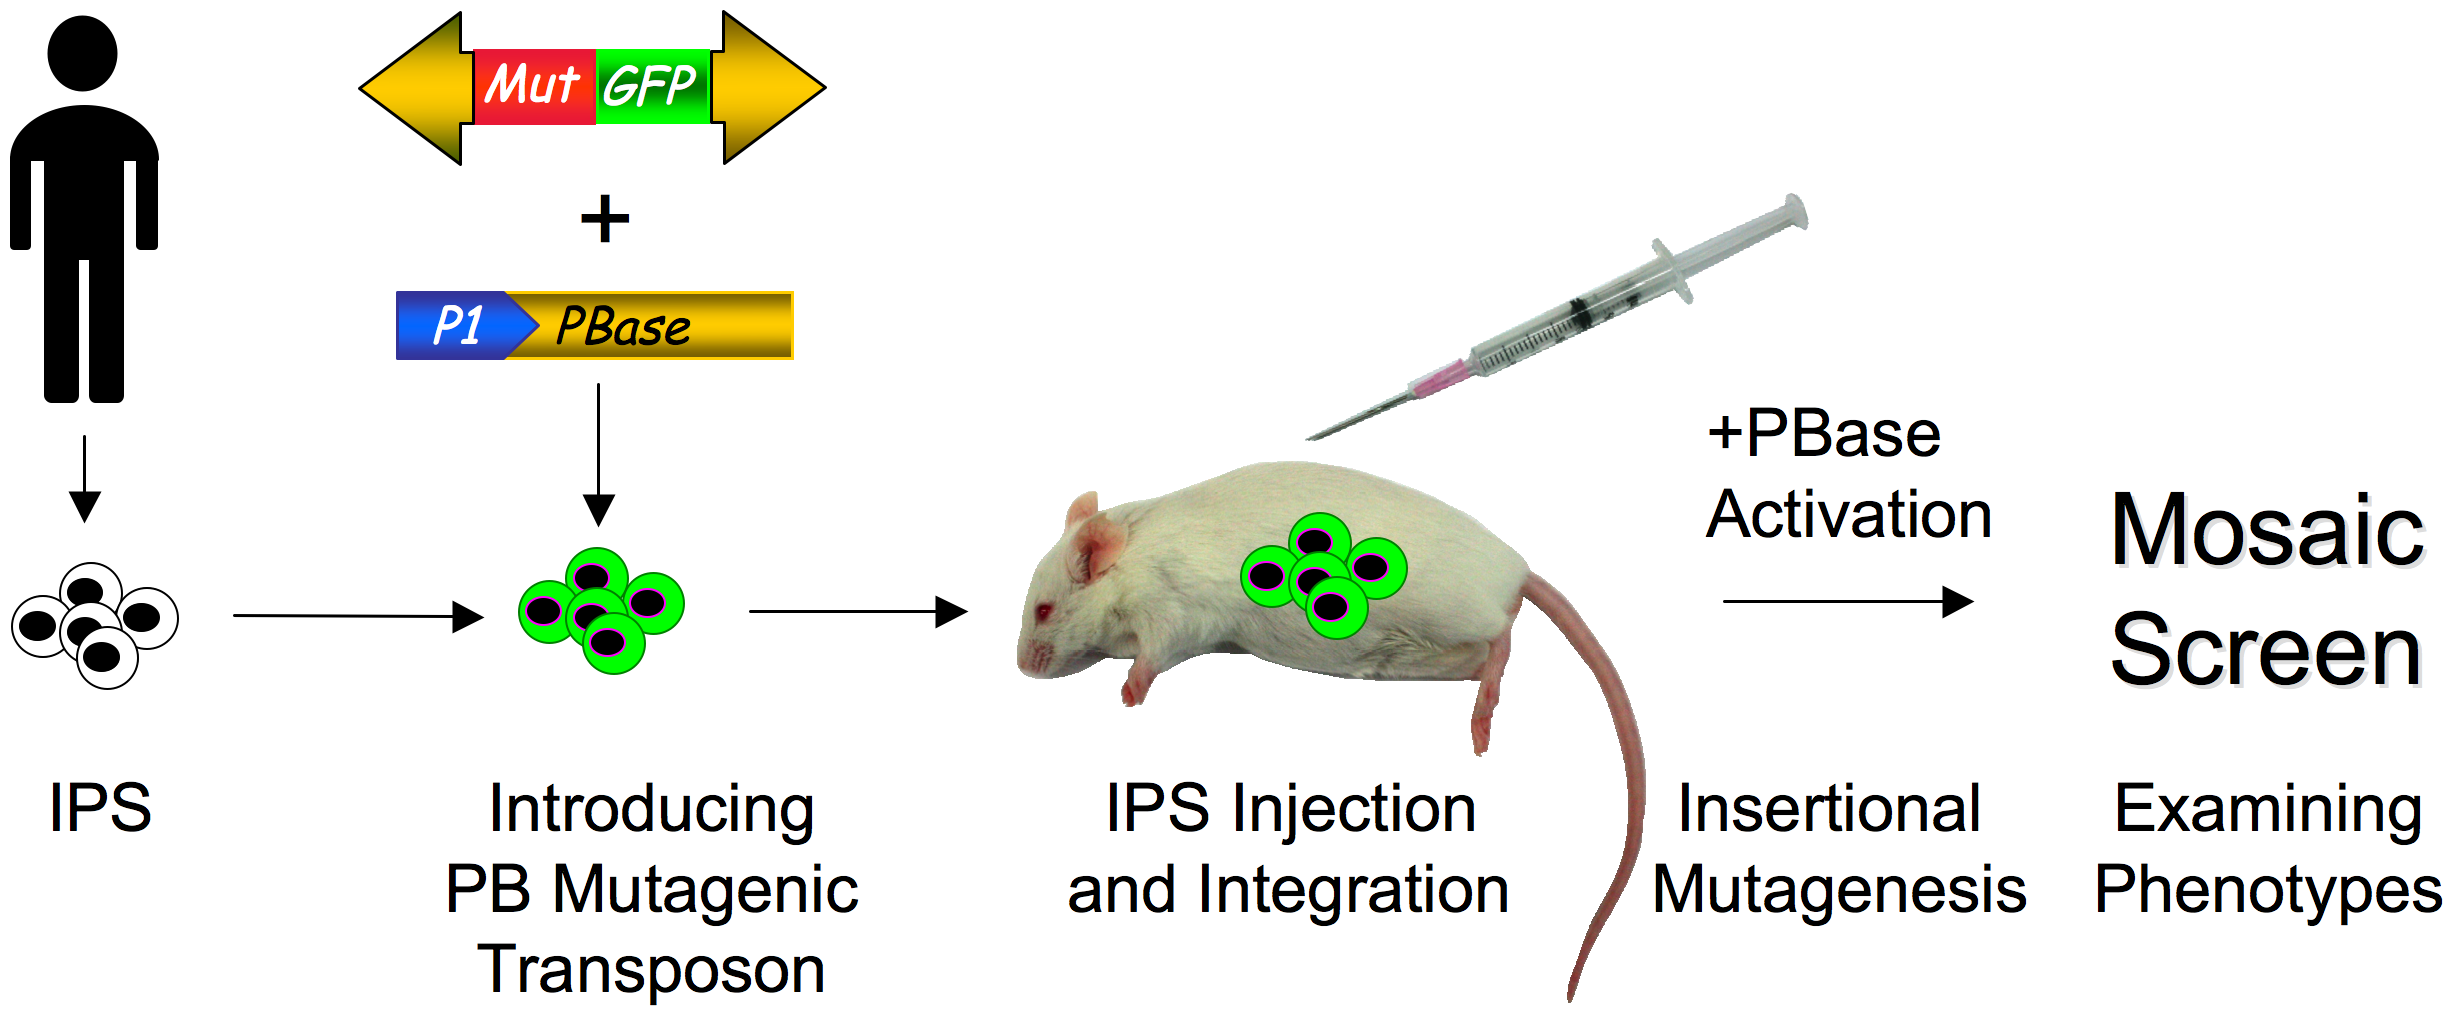 Screening for phenotypes in humanized mice with patient-derived IPS cells.